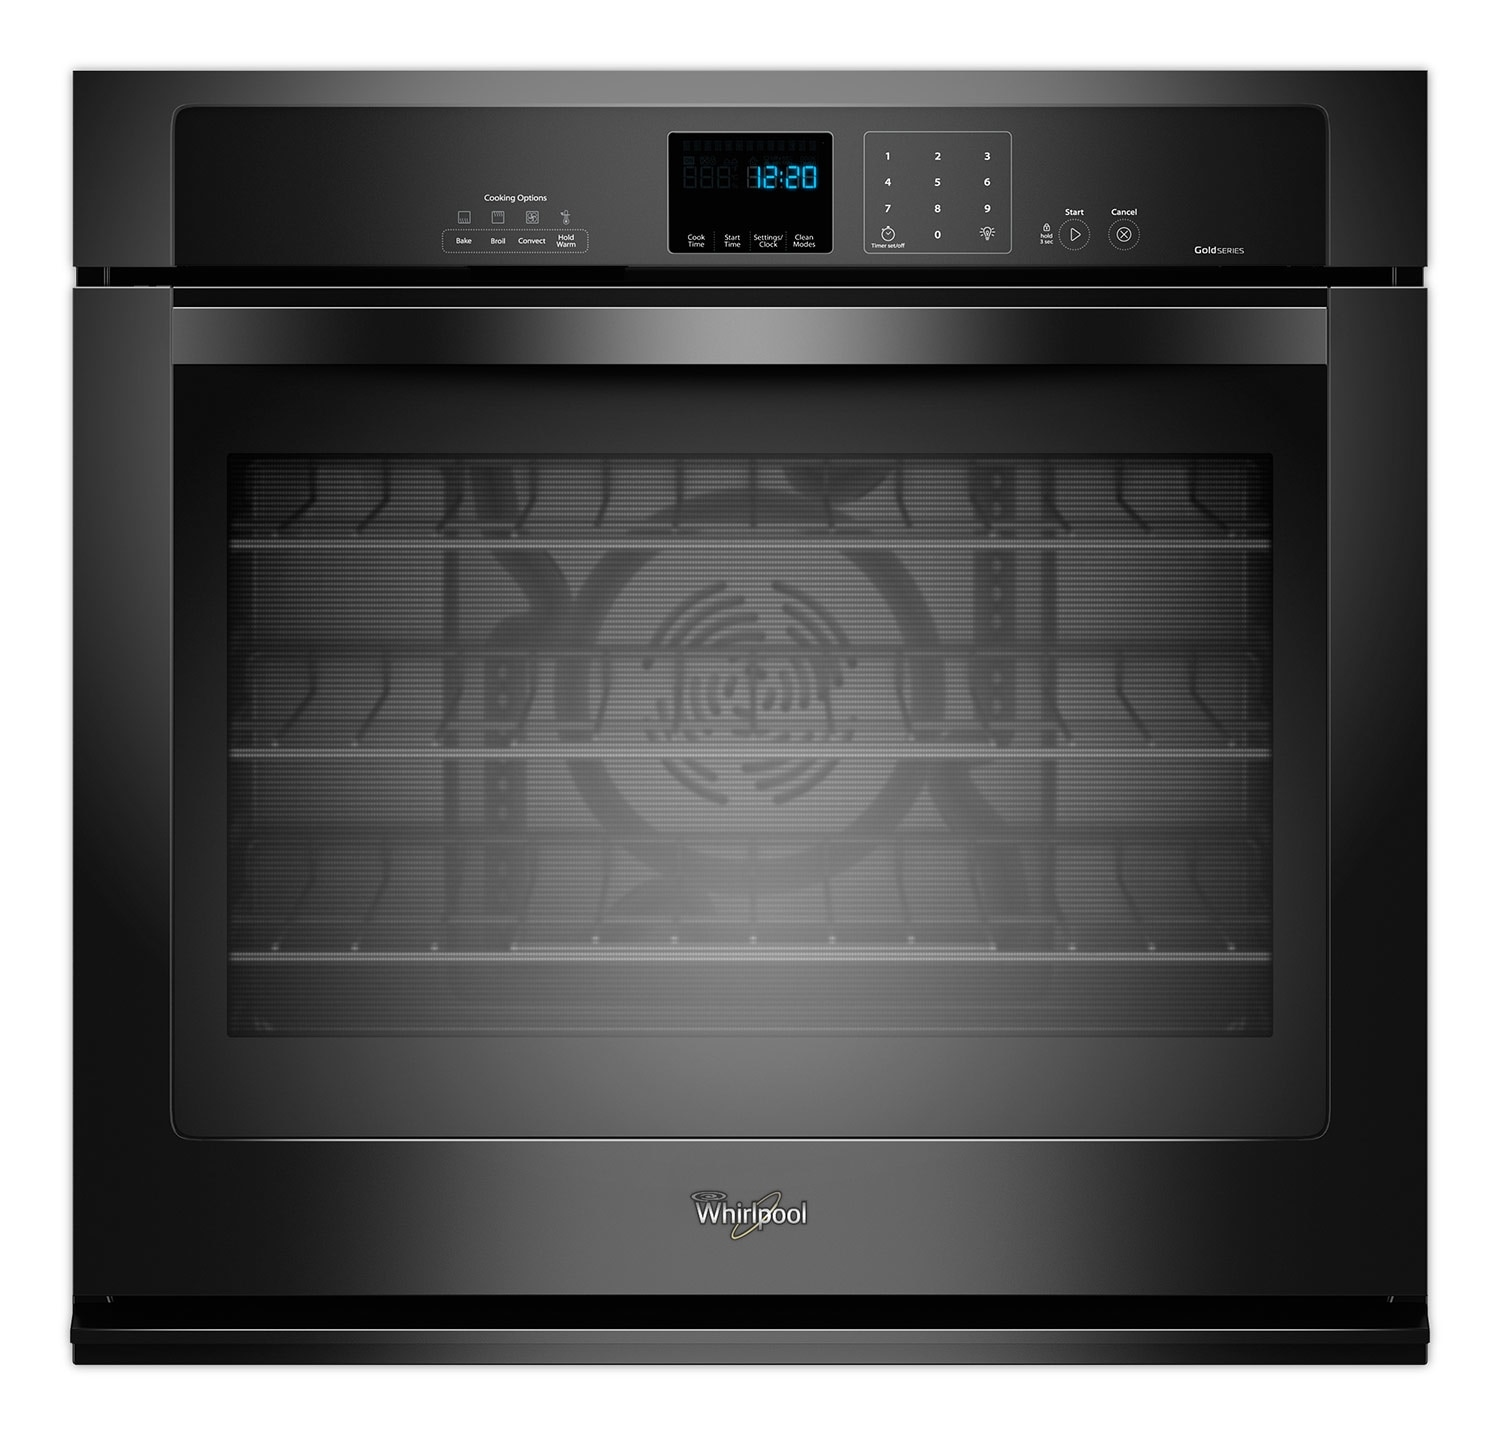 Cooking Products - Whirlpool Black Wall Oven (5 Cu. Ft.) - WOS92EC0AB